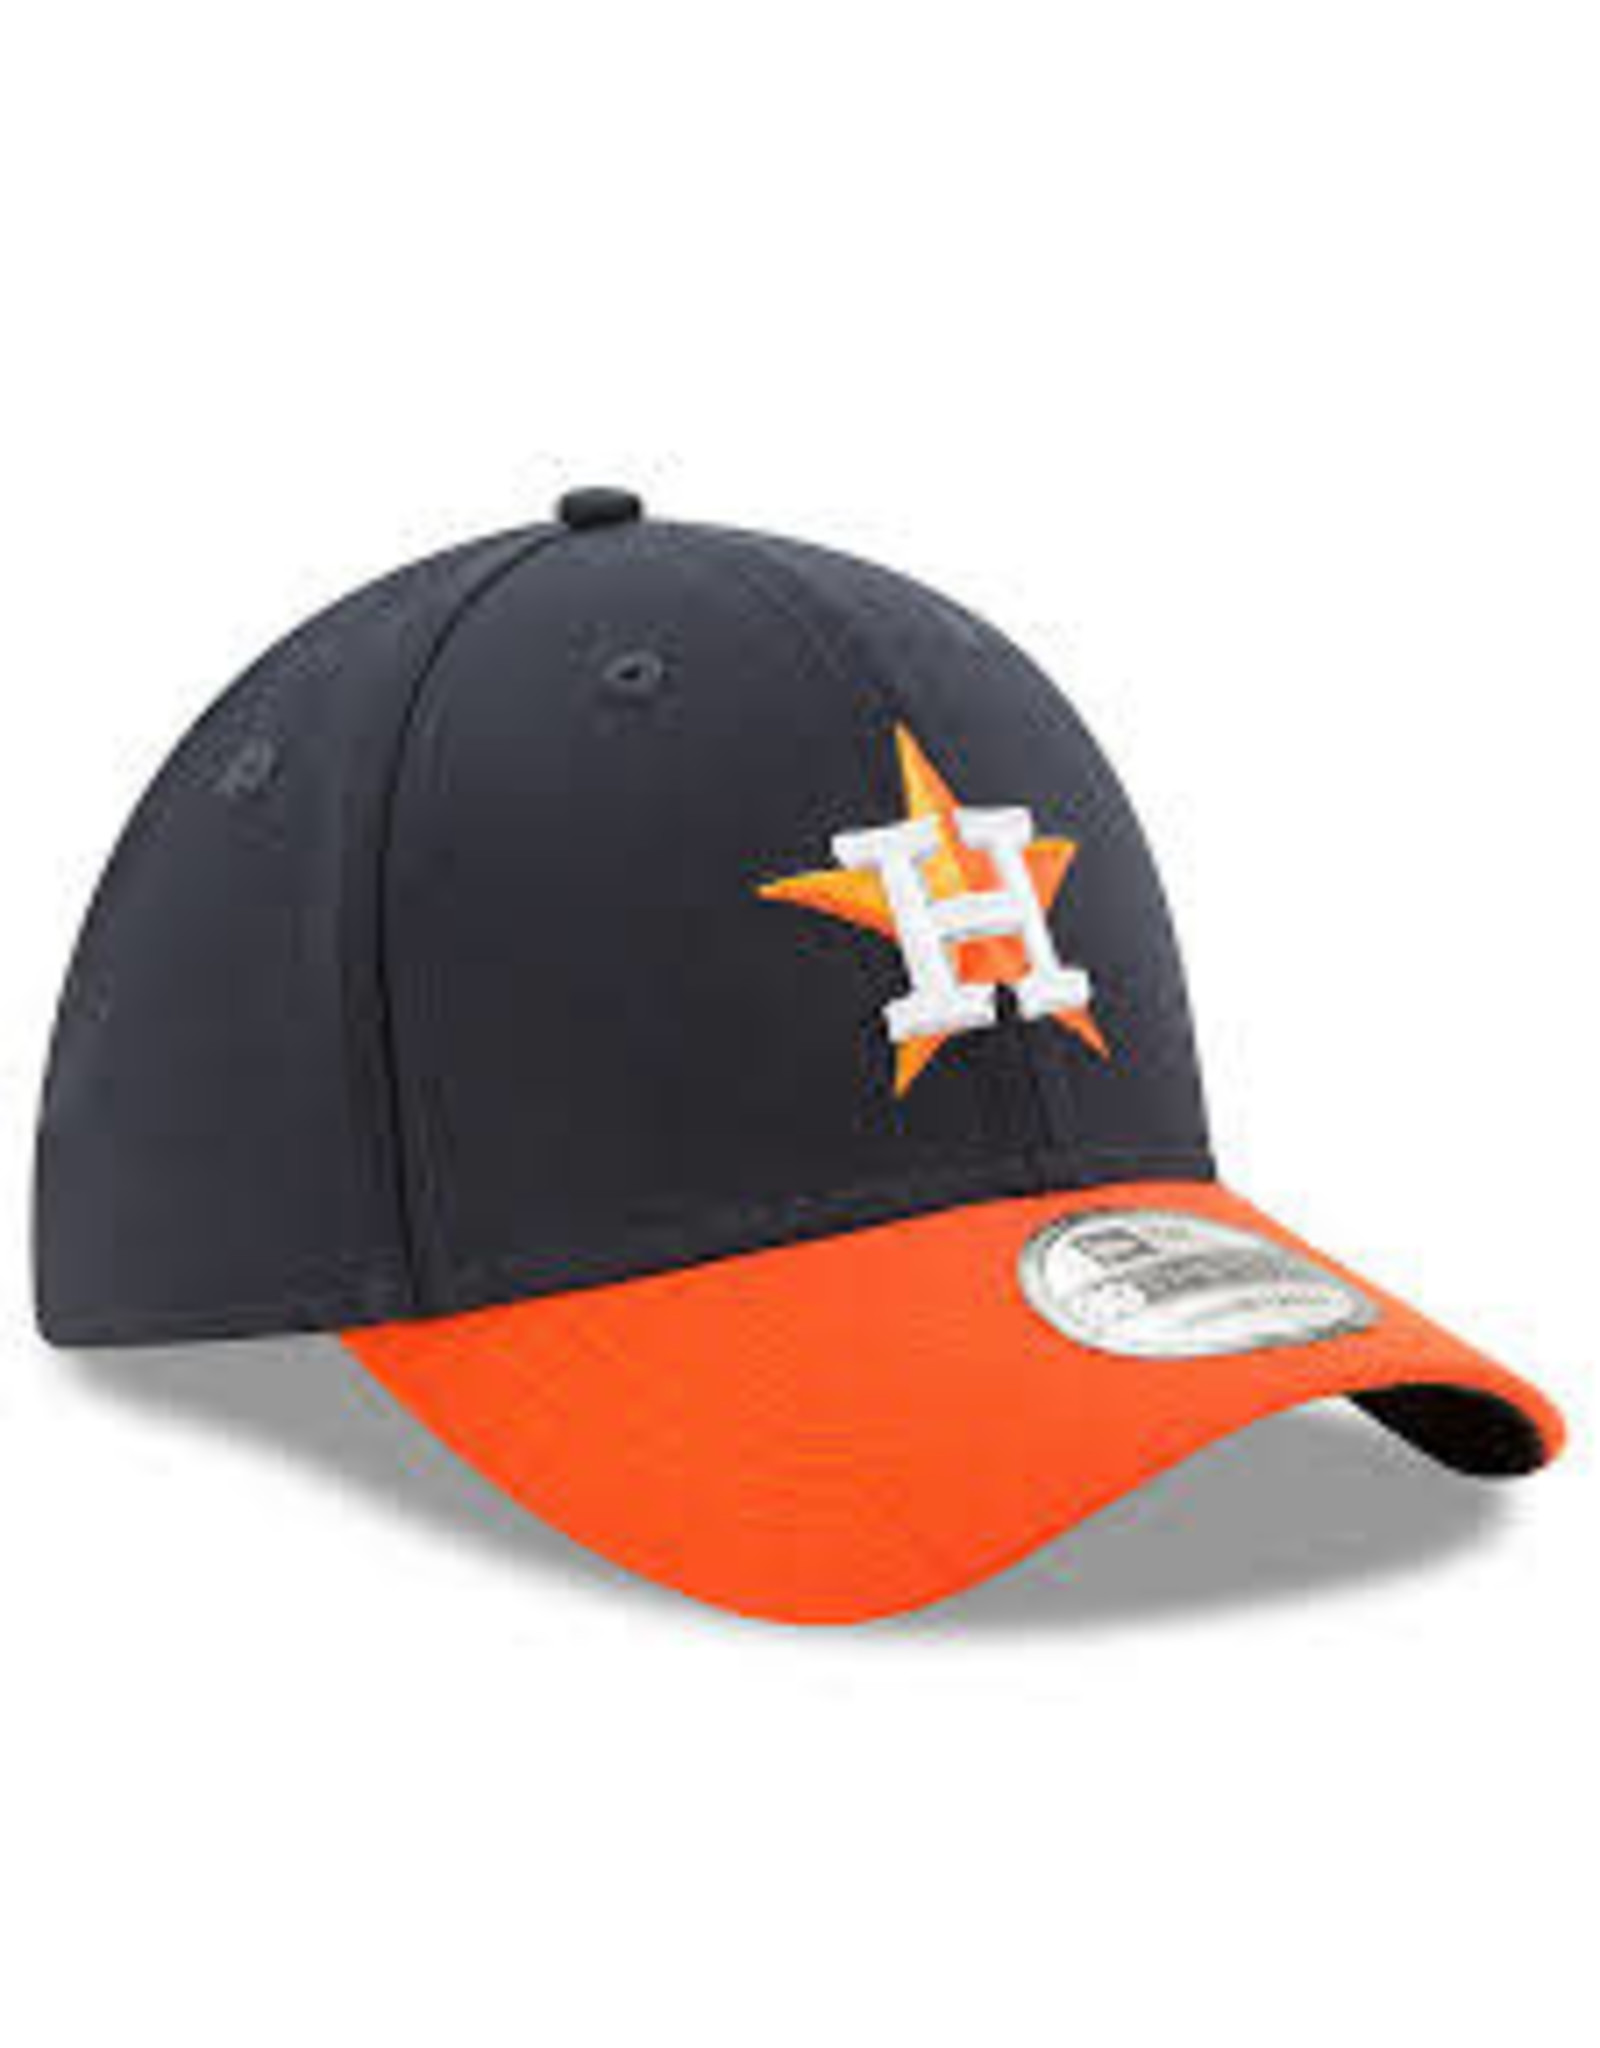 New Era - Houston Astros Road Team Classic 39THIRTY - Flex Hat - Navy/Orange